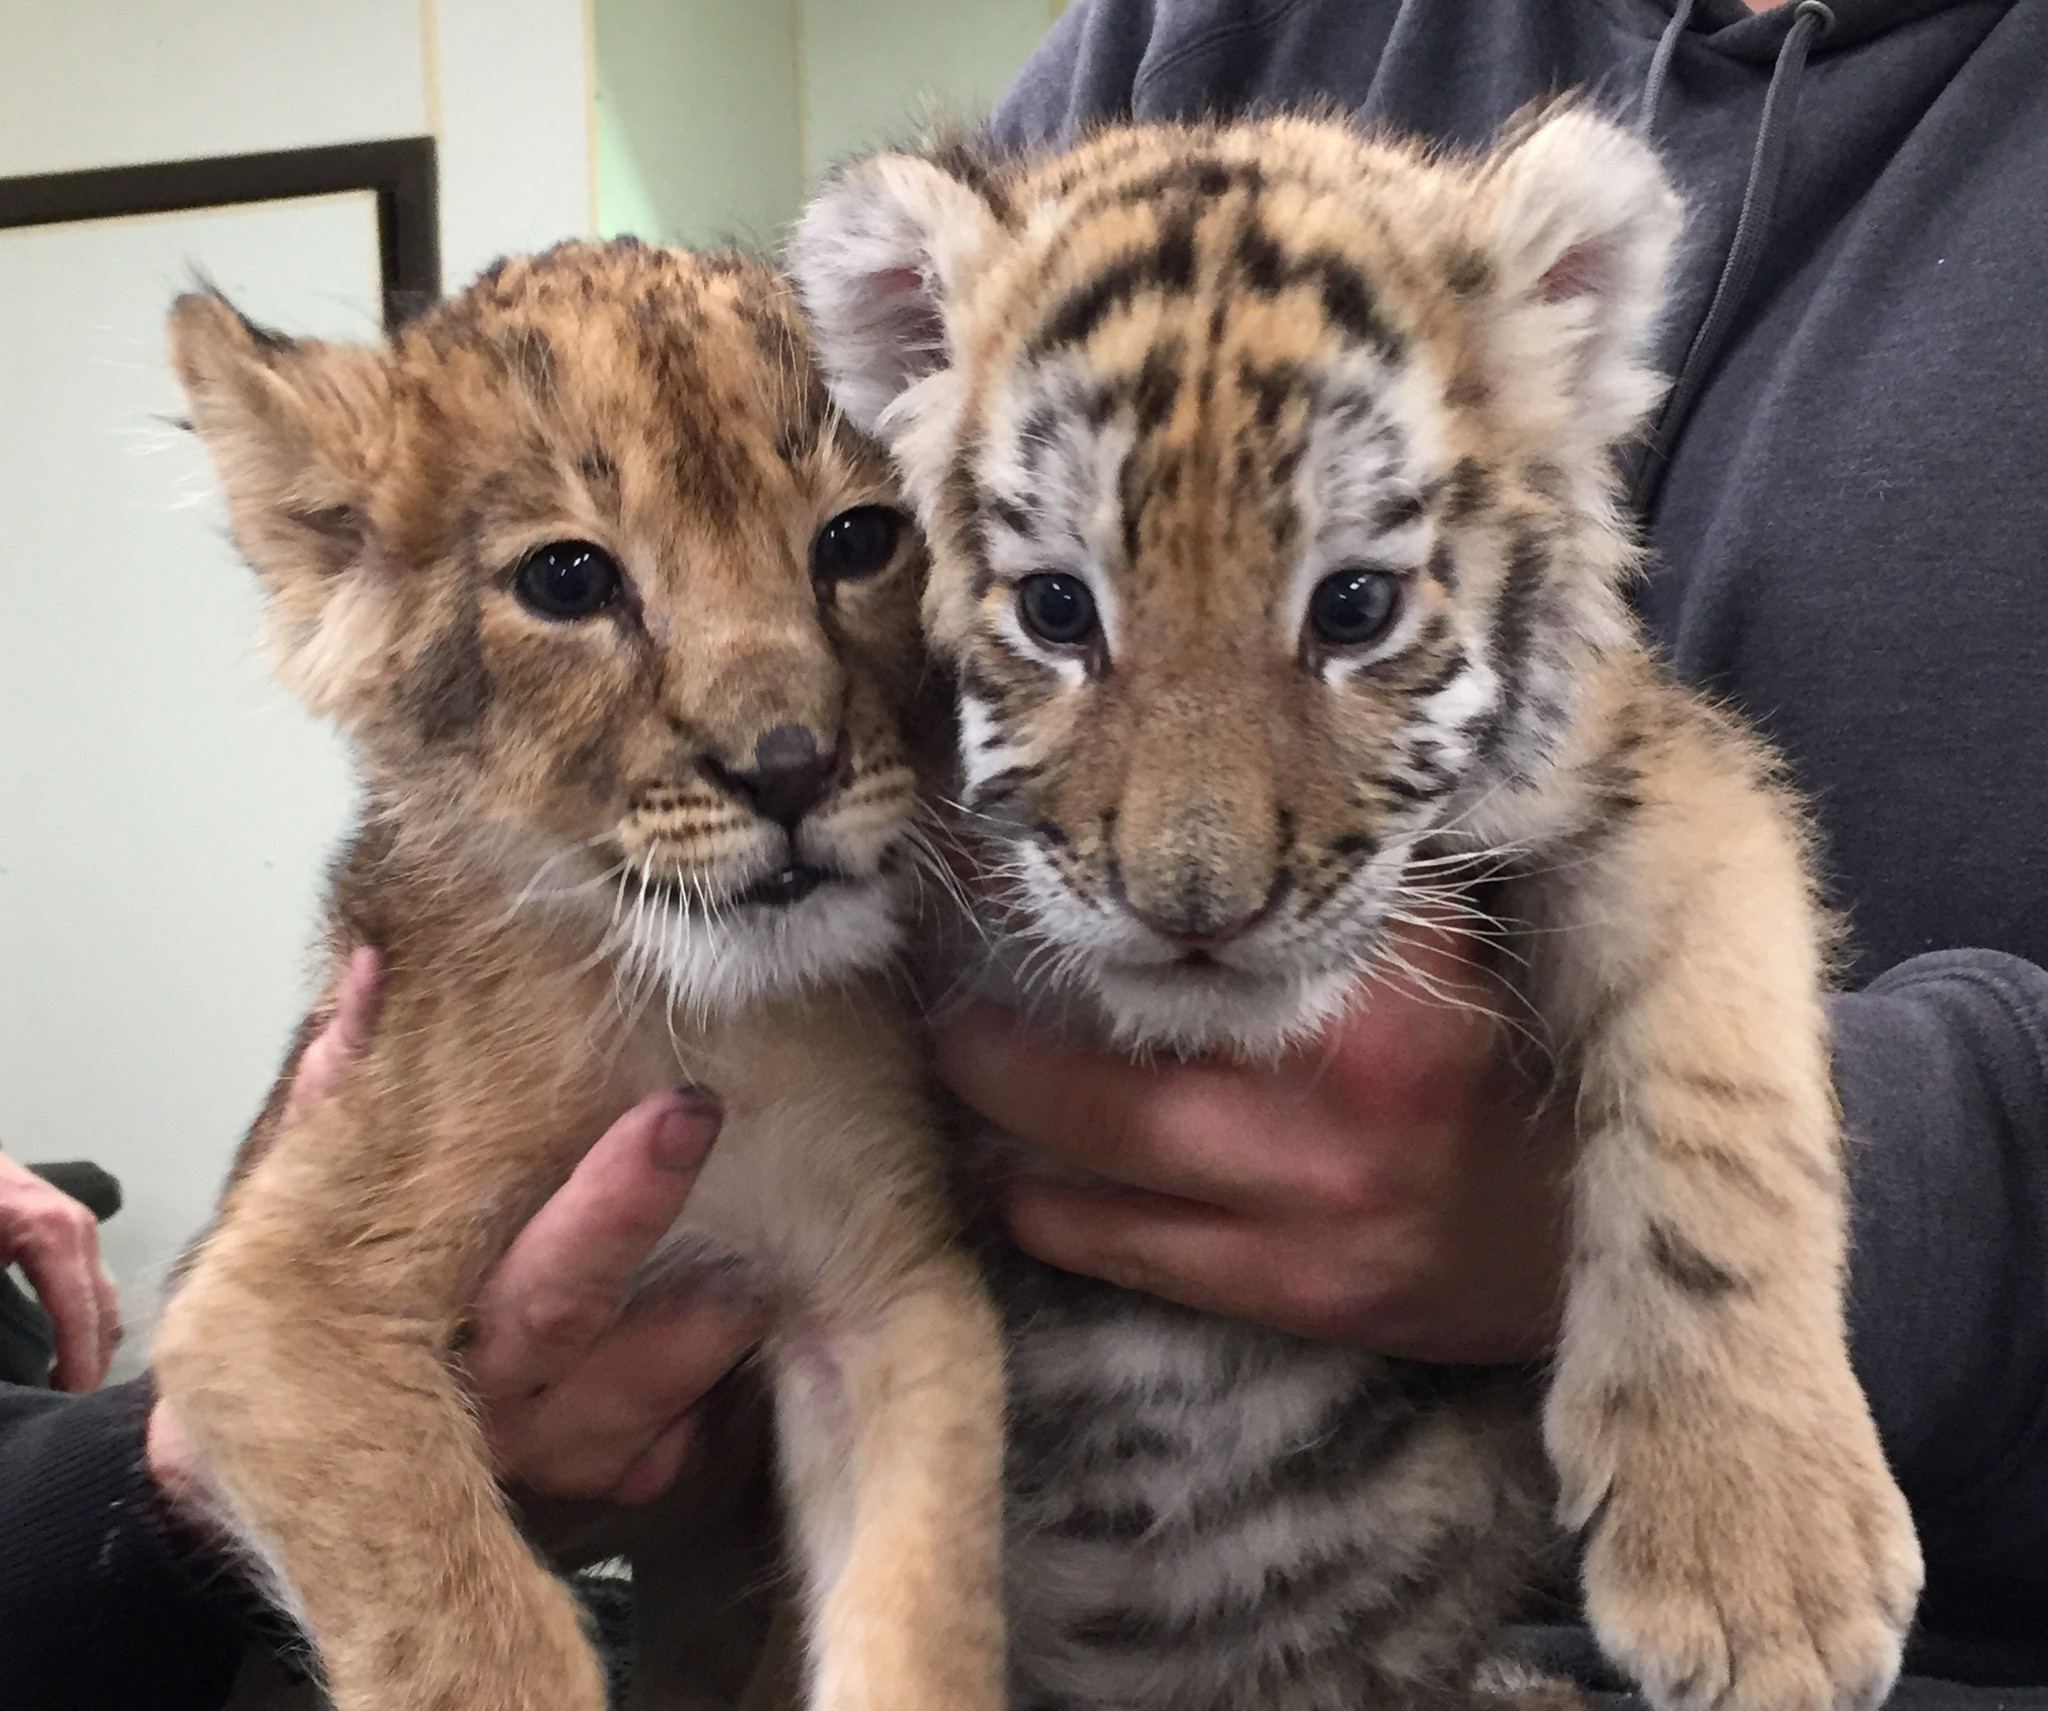 Baby tiger and lion being raised together at Six Flags - The Morning ... Cute Siberian Tiger Cubs